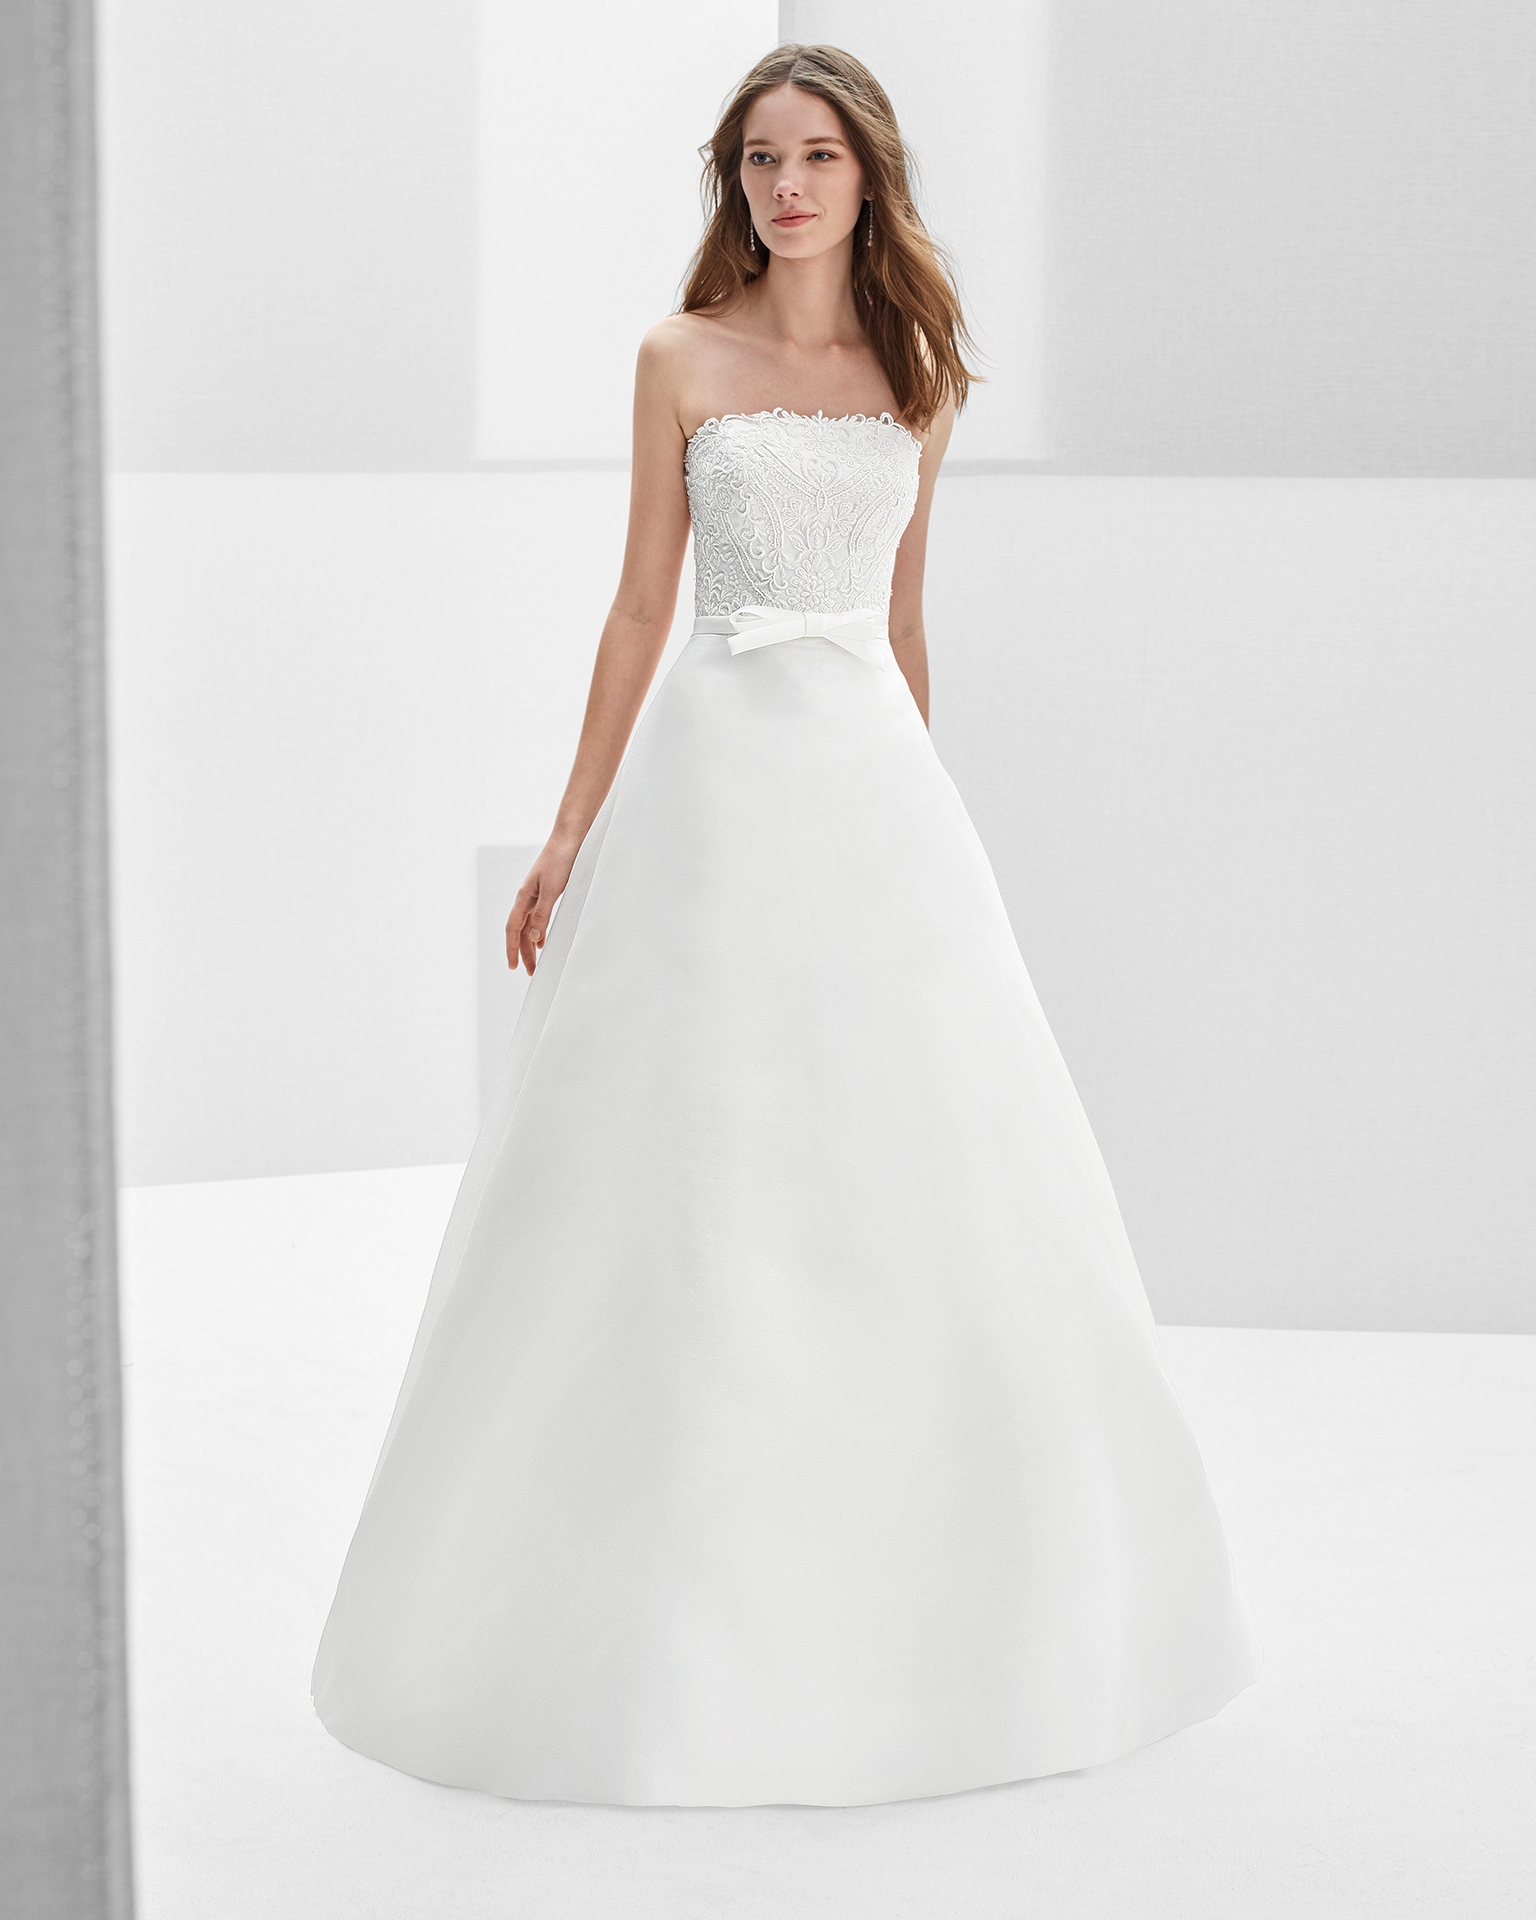 Classic-style beaded organza strapless wedding dress.